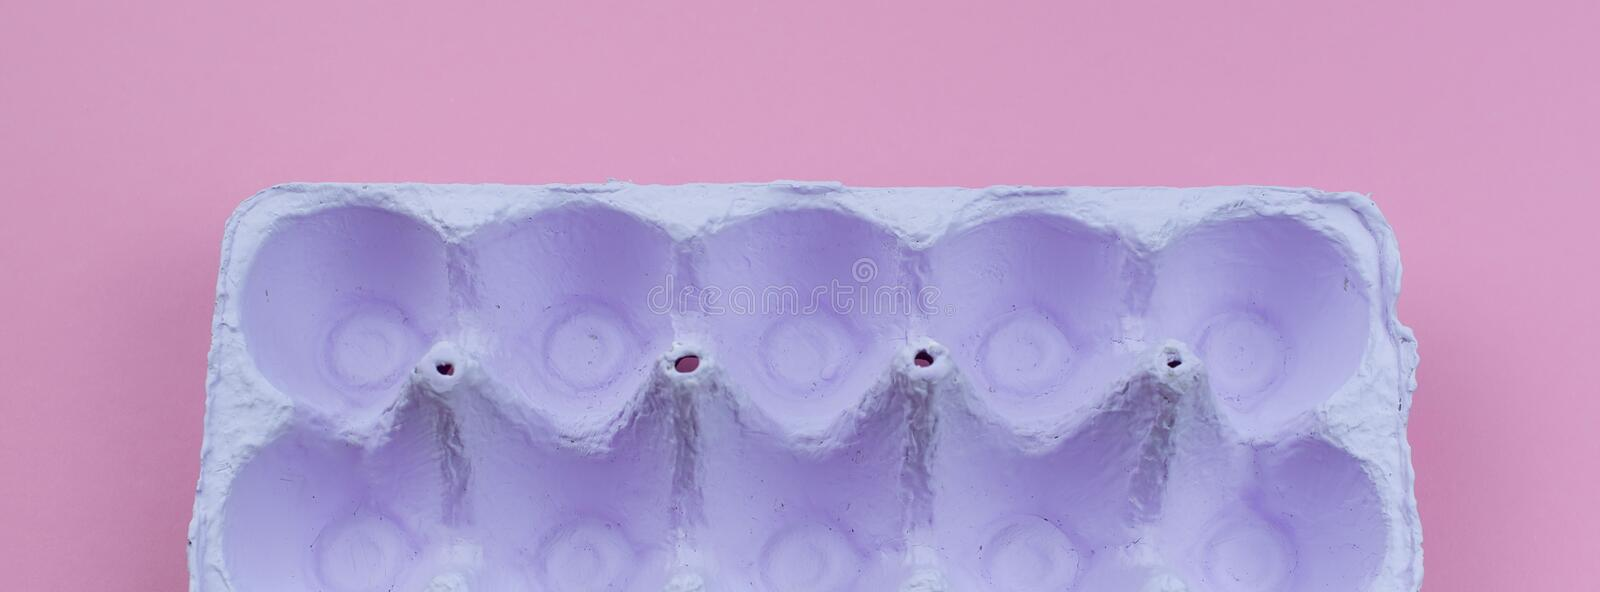 Banner Stand for eggs purple on a pink background. royalty free stock images